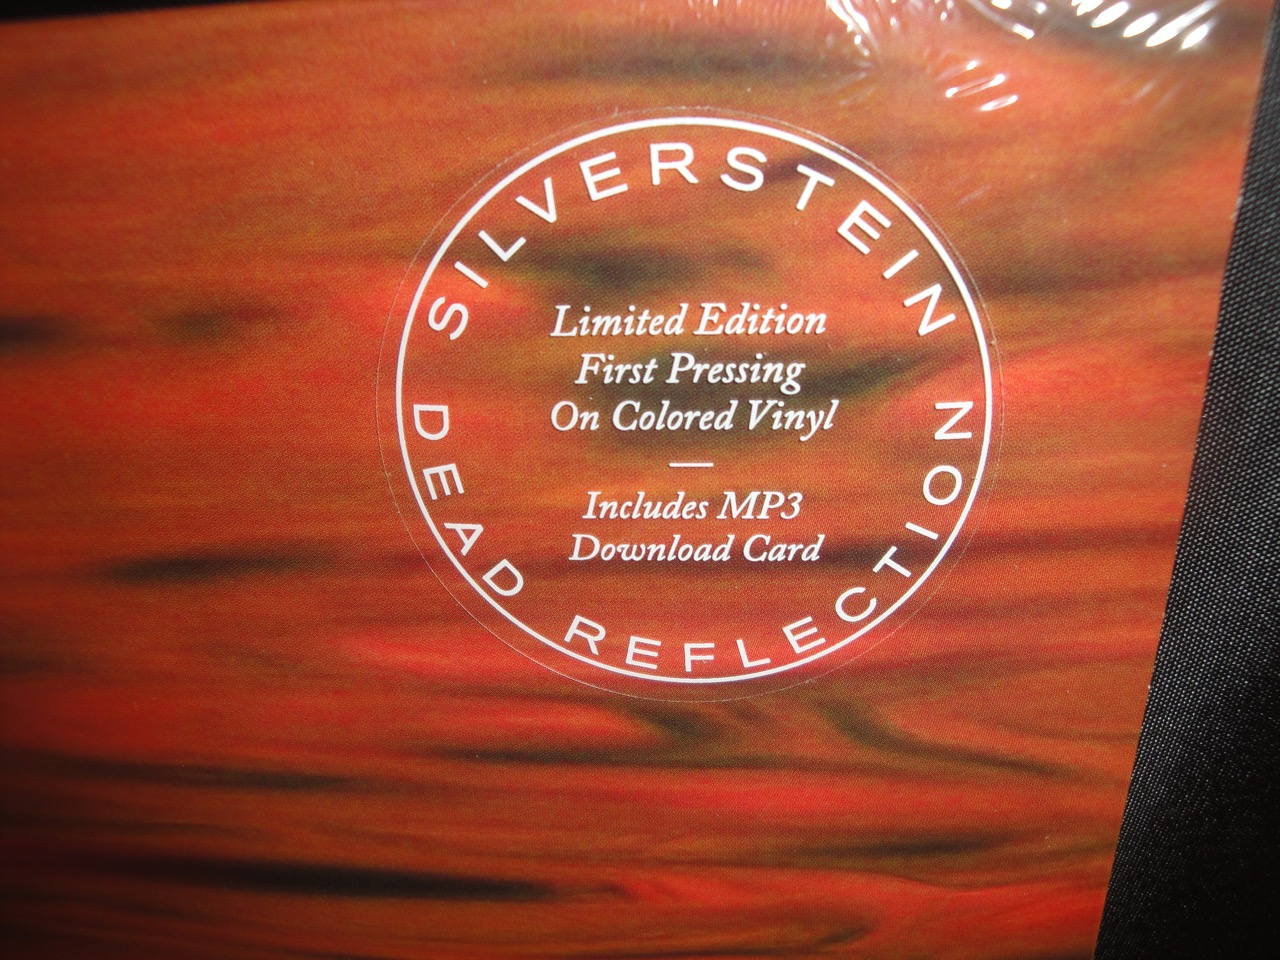 Silverstein - Dead Reflection - Limited Edition Colored Vinyl, 2017